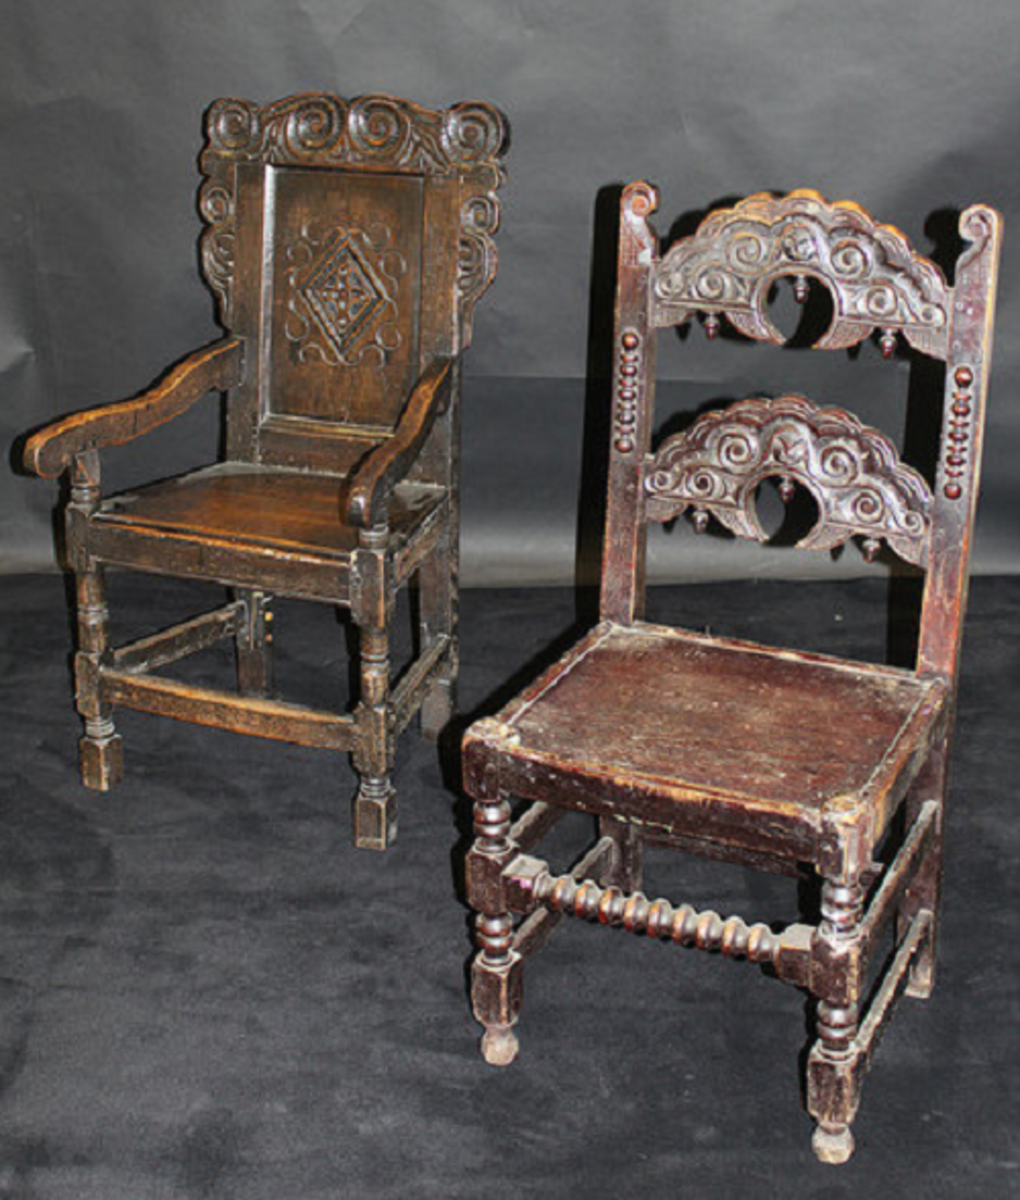 Early American Furniture 17th Century Colonial Era